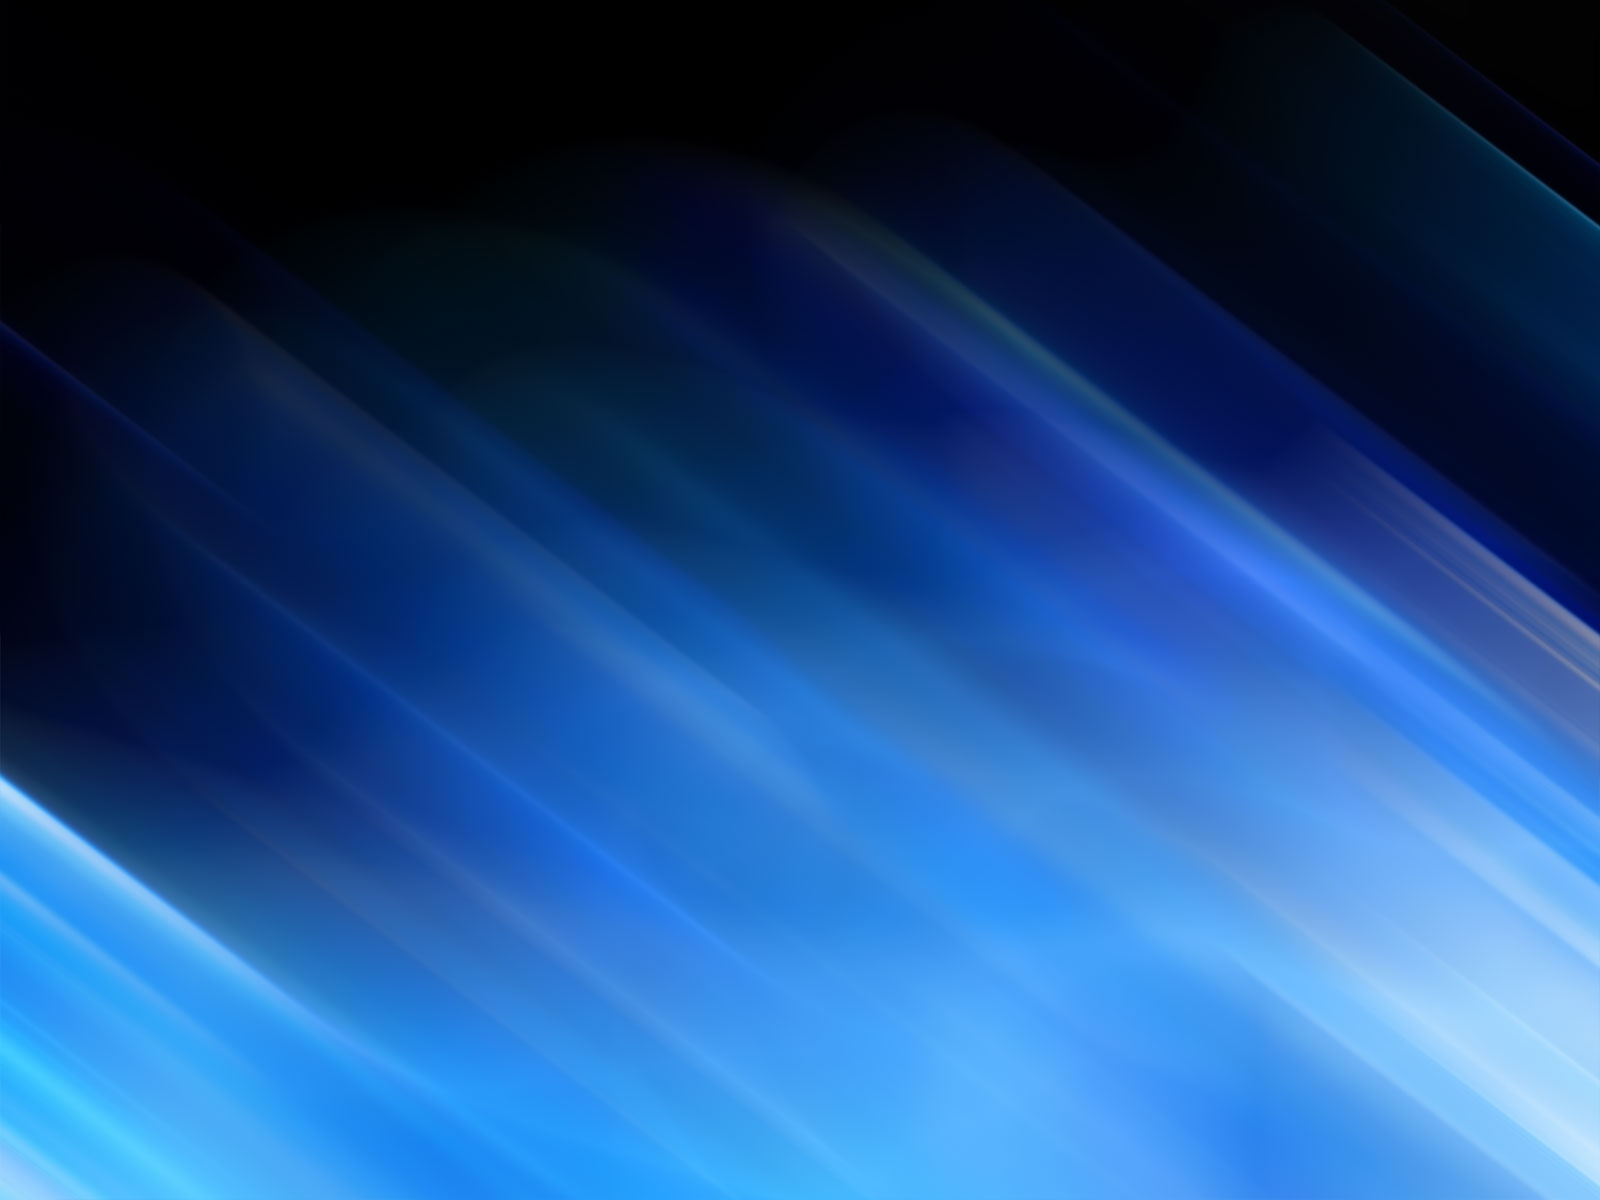 Hd Abstract Blue Background: Info Wallpapers: Hd Wallpaper Abstract Blue